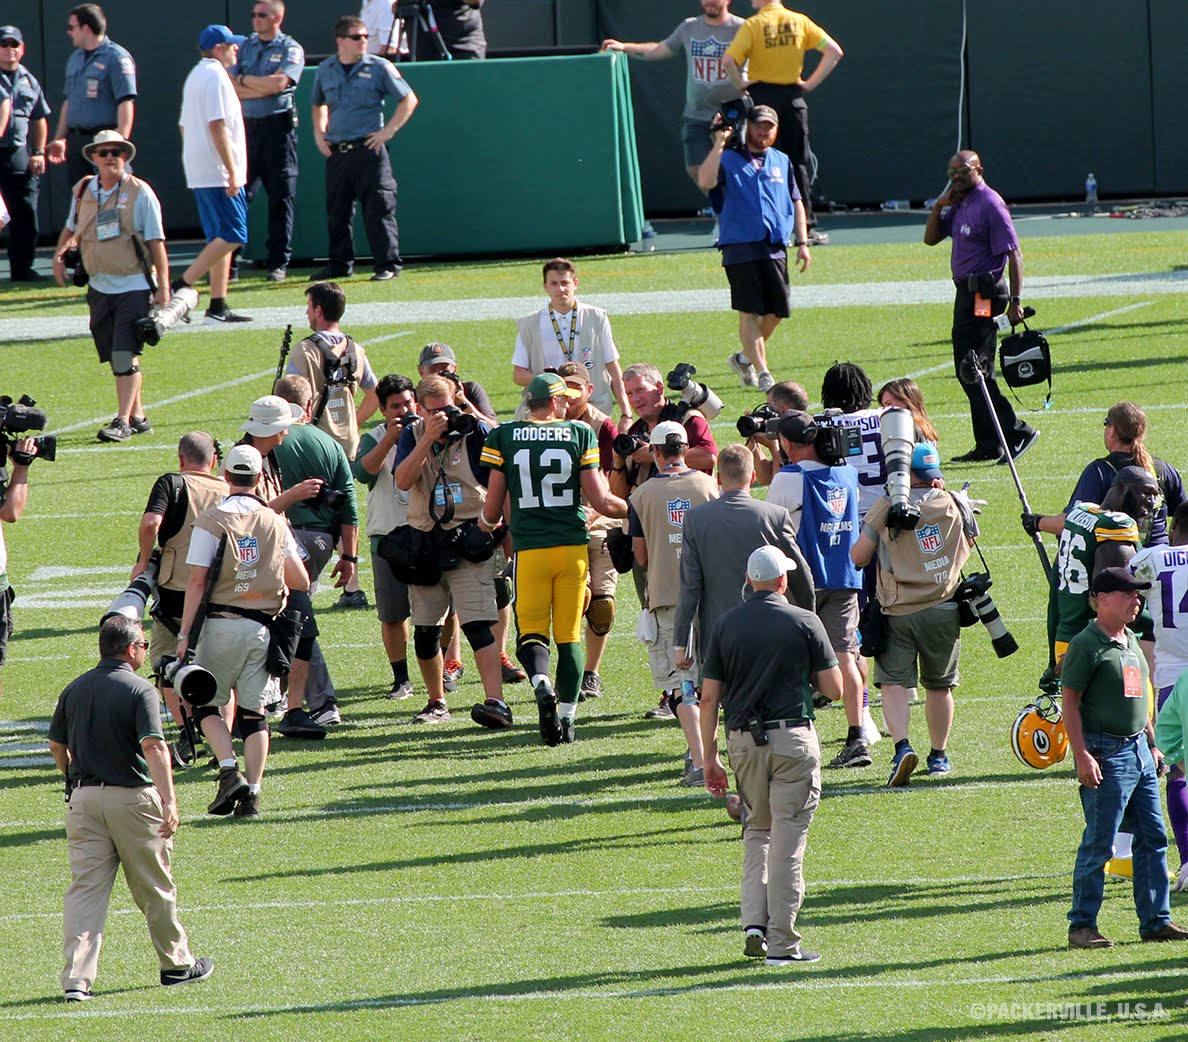 qb aaron rodgers 12 makes his way towards the tunnel after speaking with some reporters at the end of the game